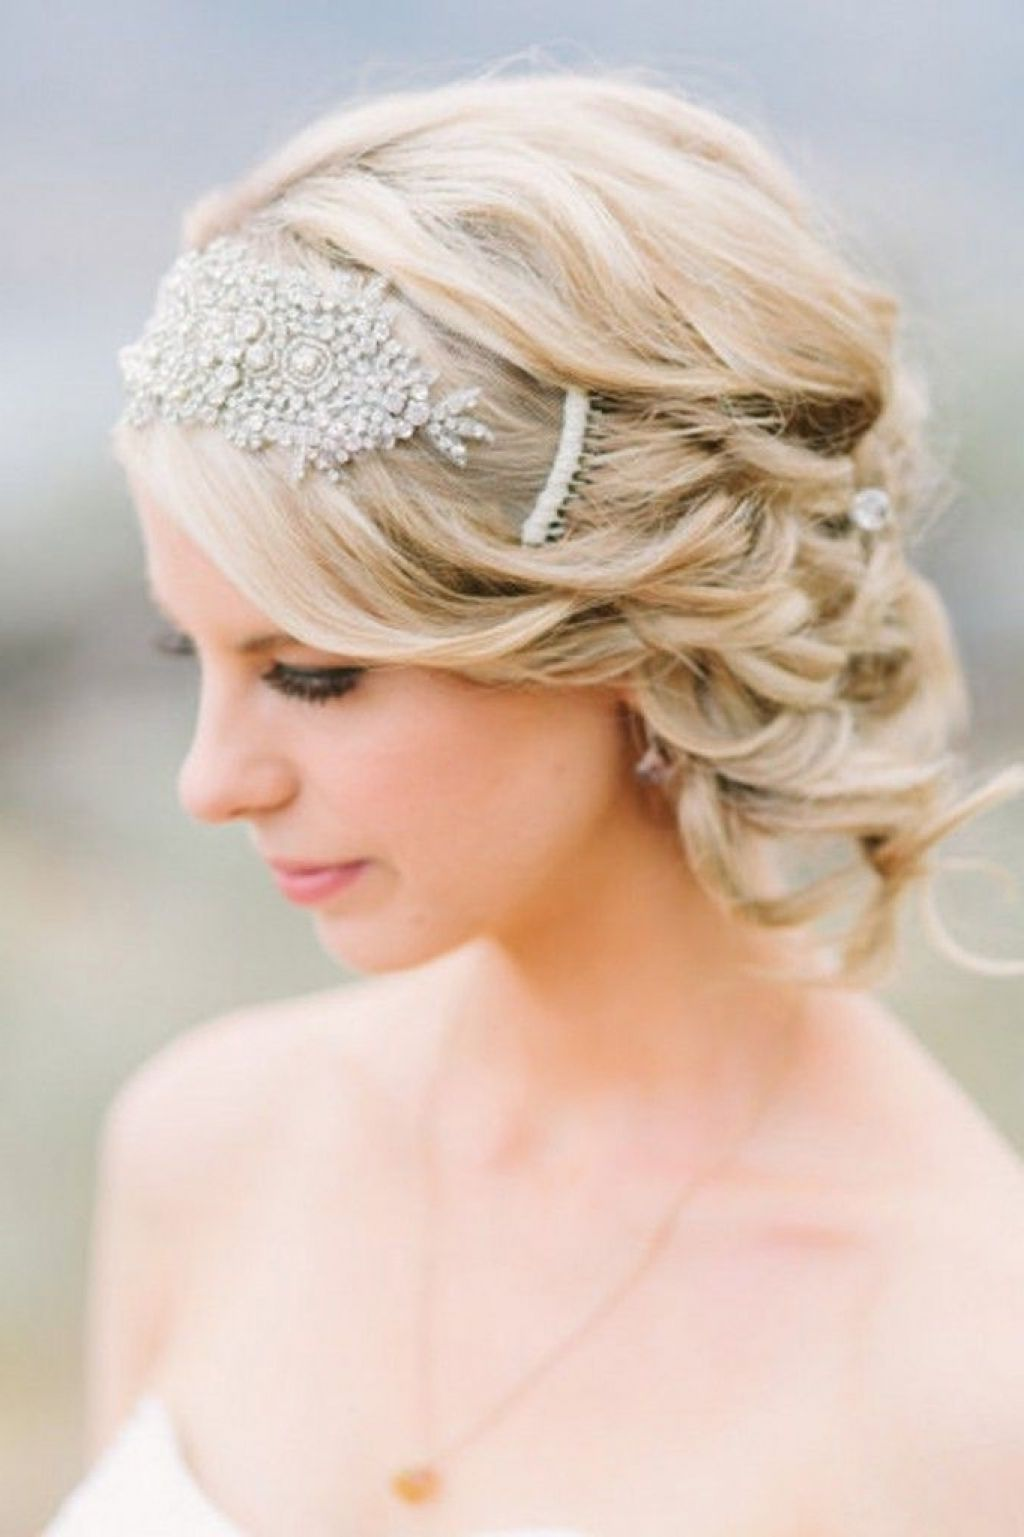 hair style bridal 50 fabulous bridal hairstyles for hair 5948 | 6f851b9ec792c4050023ce9920749945